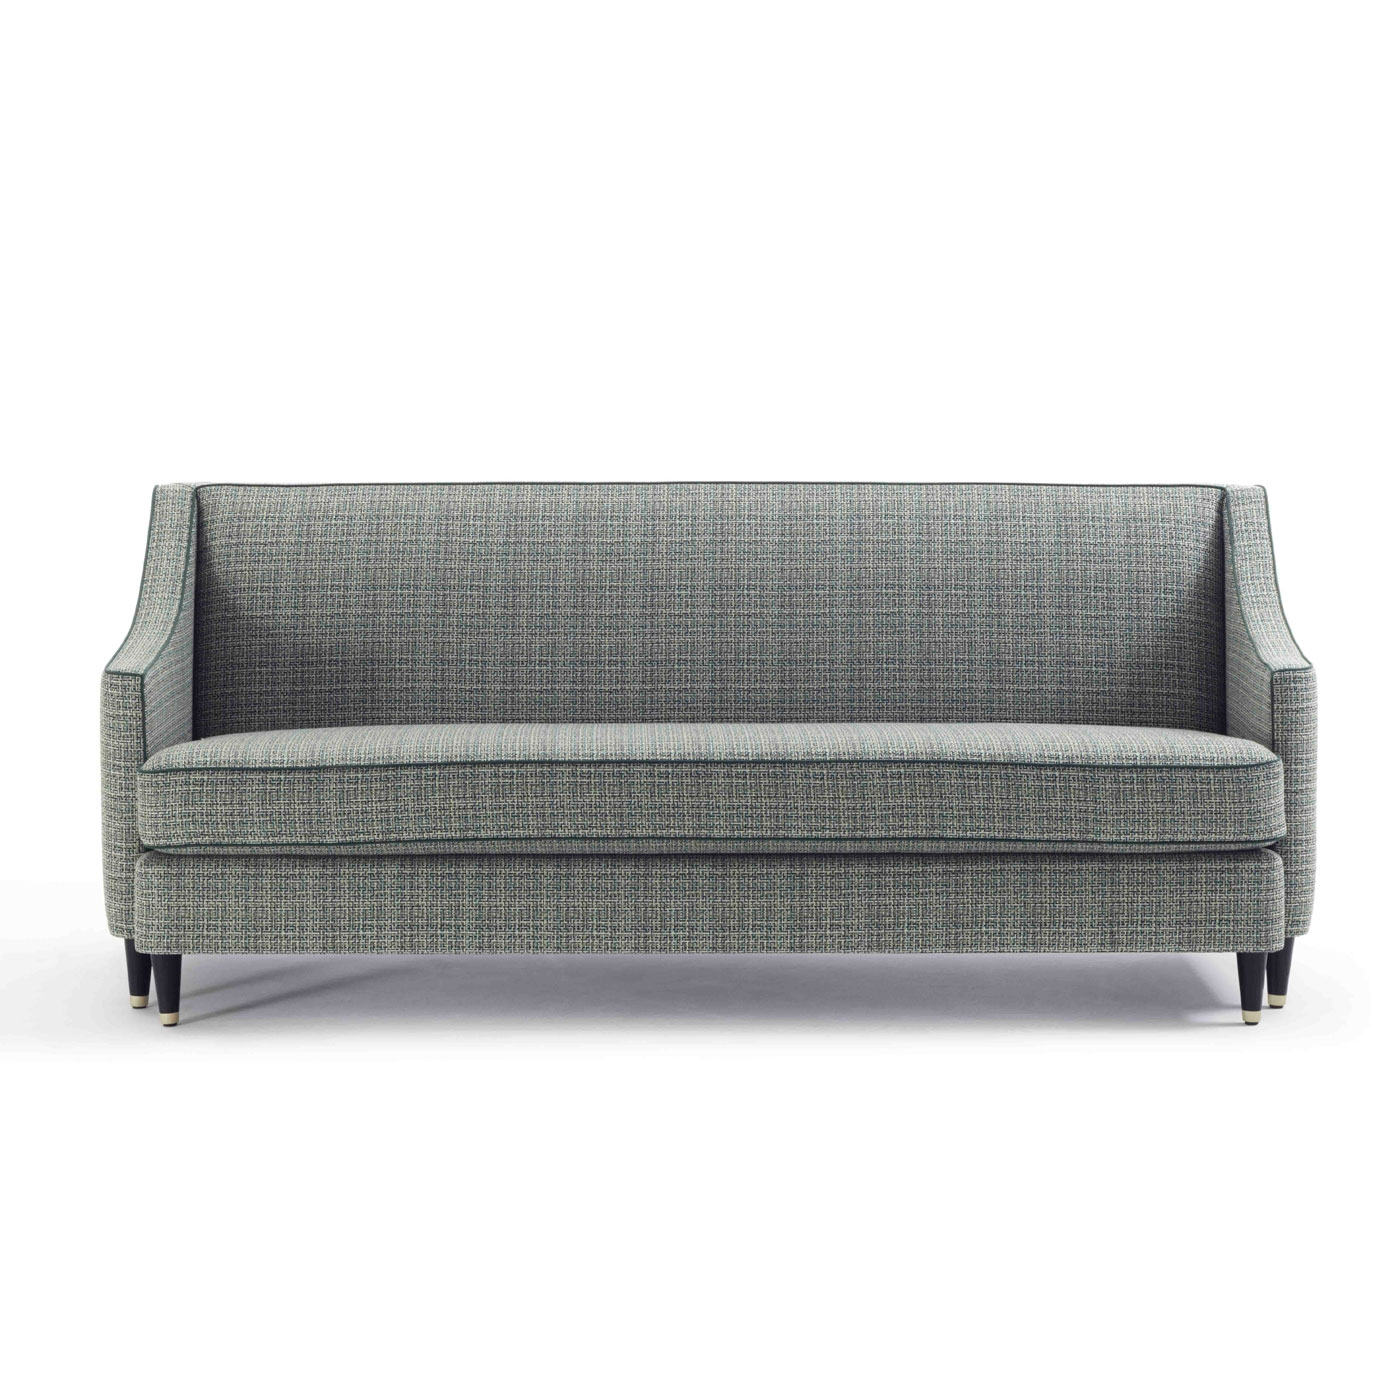 Kelly Sofa Galimberti Nino